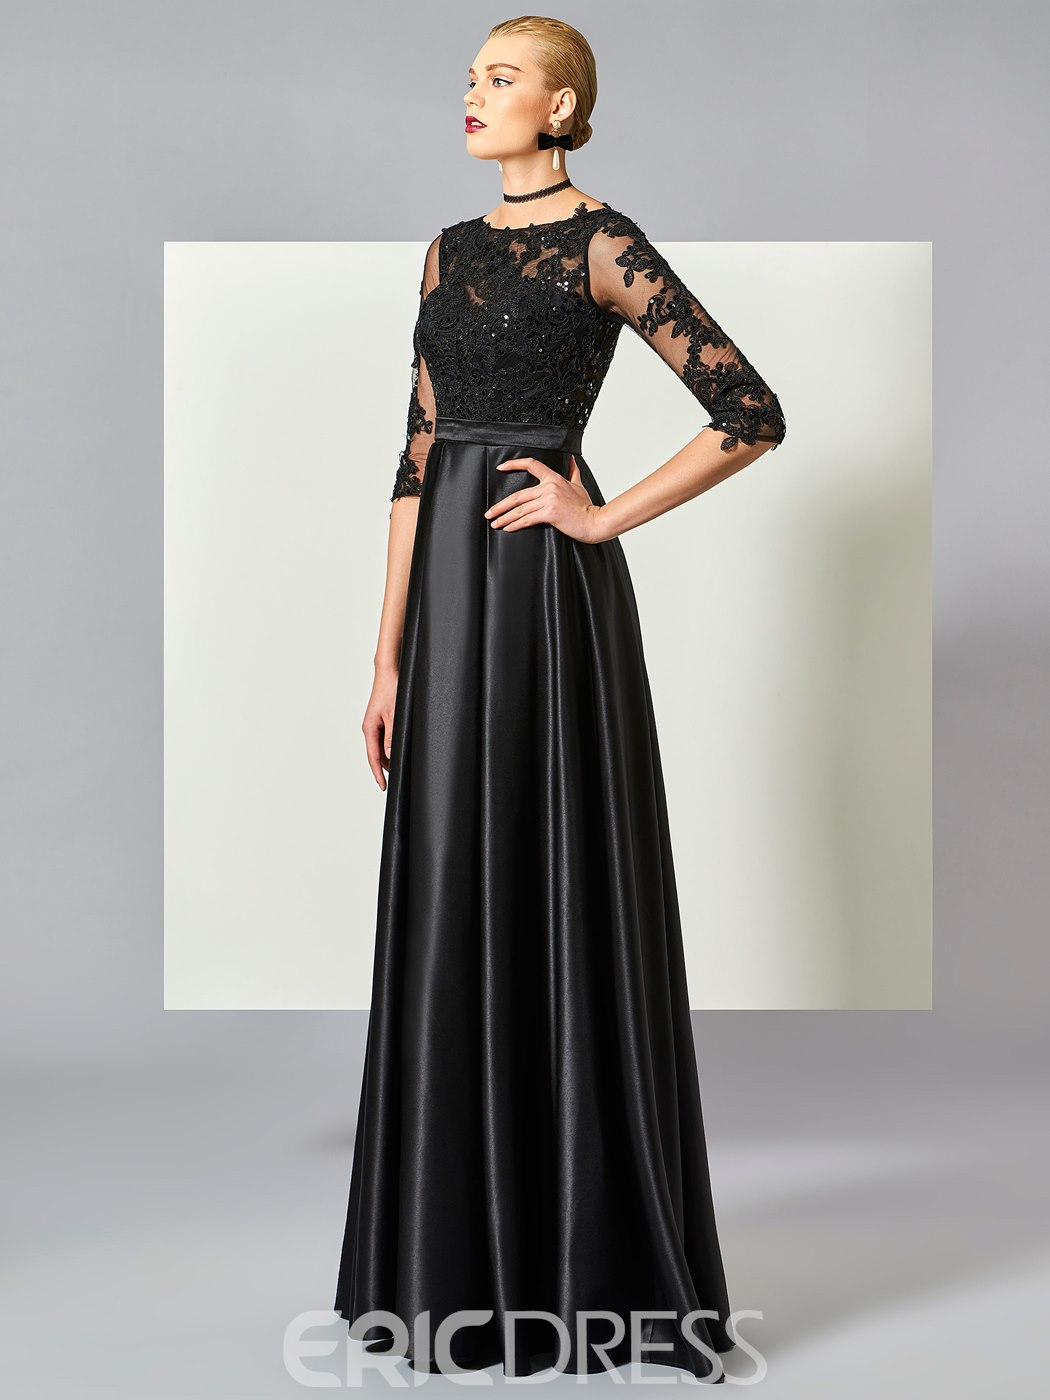 Ericdress A Line Half Sleeve Lace Applique Beaded Long Evening Dress